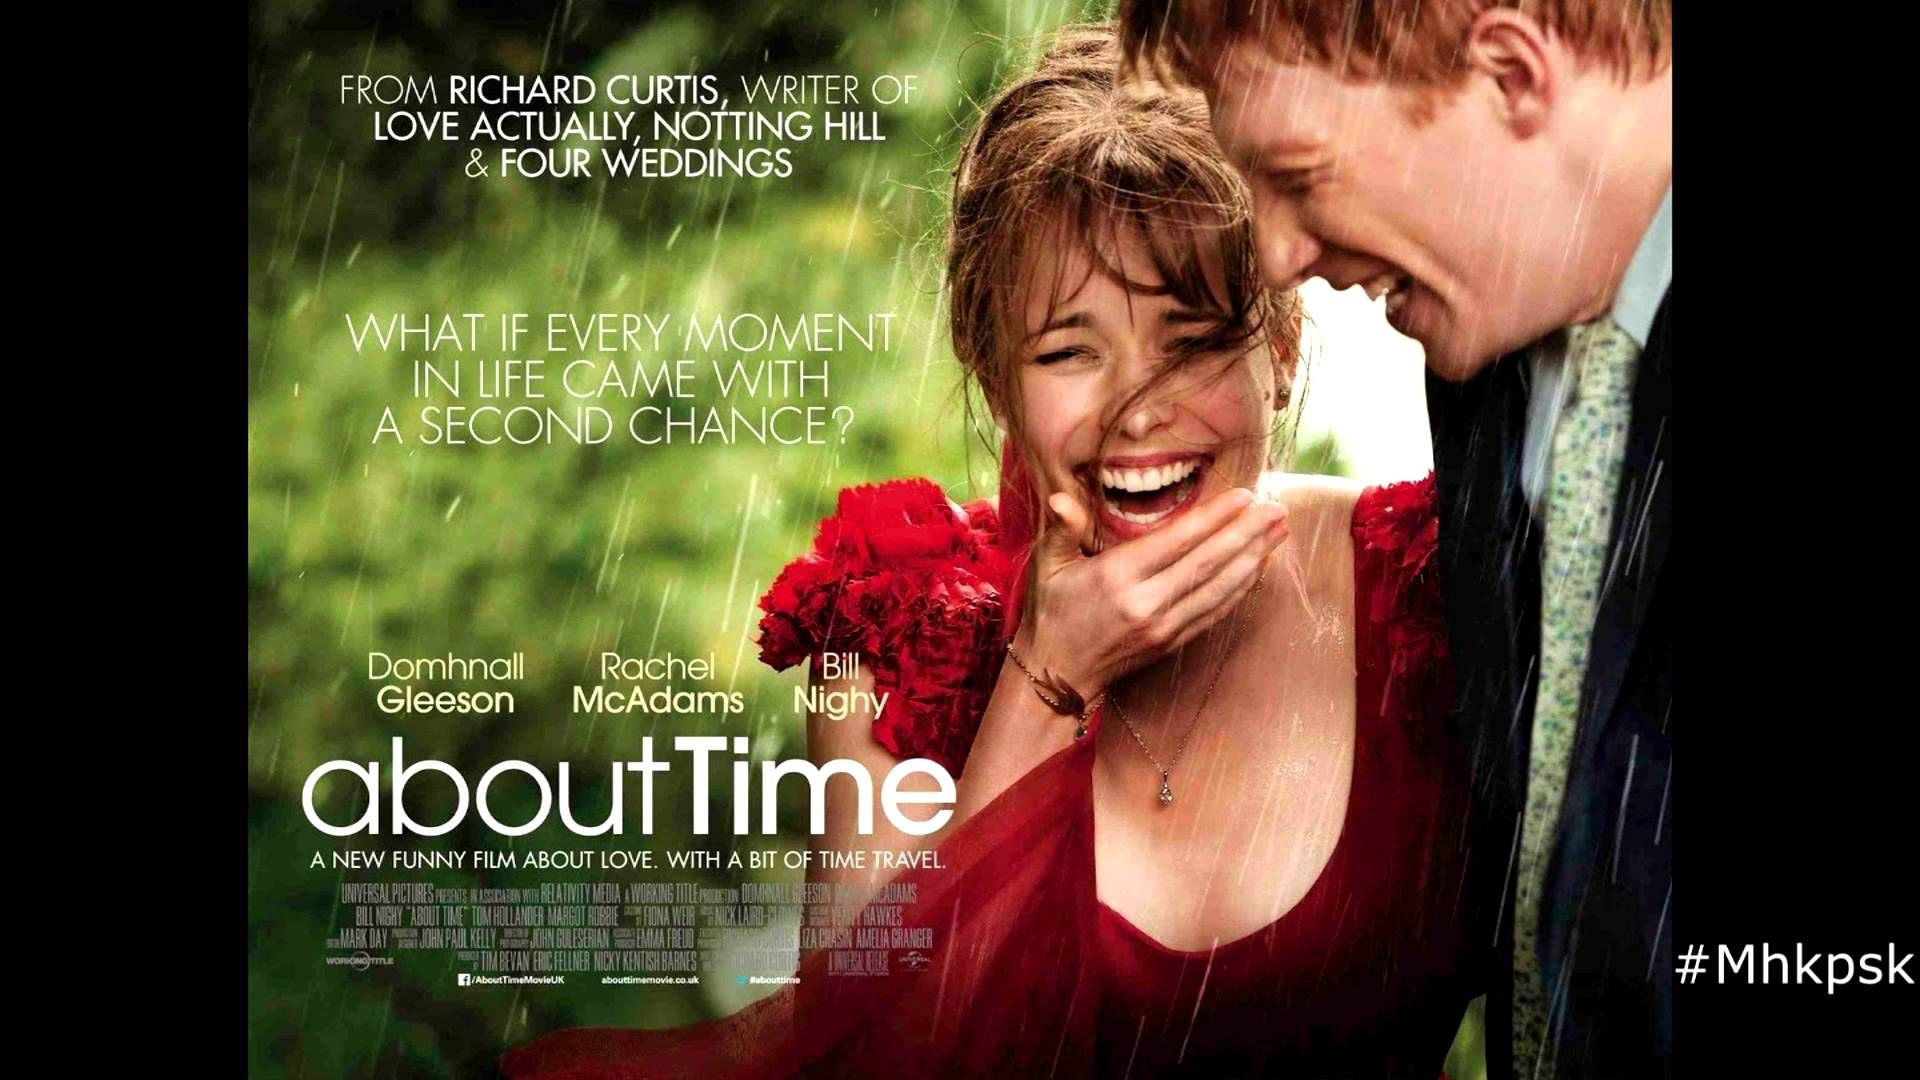 About Time Soundtrack Full Album 320kbps About Time Movie Richard Curtis Love Actually